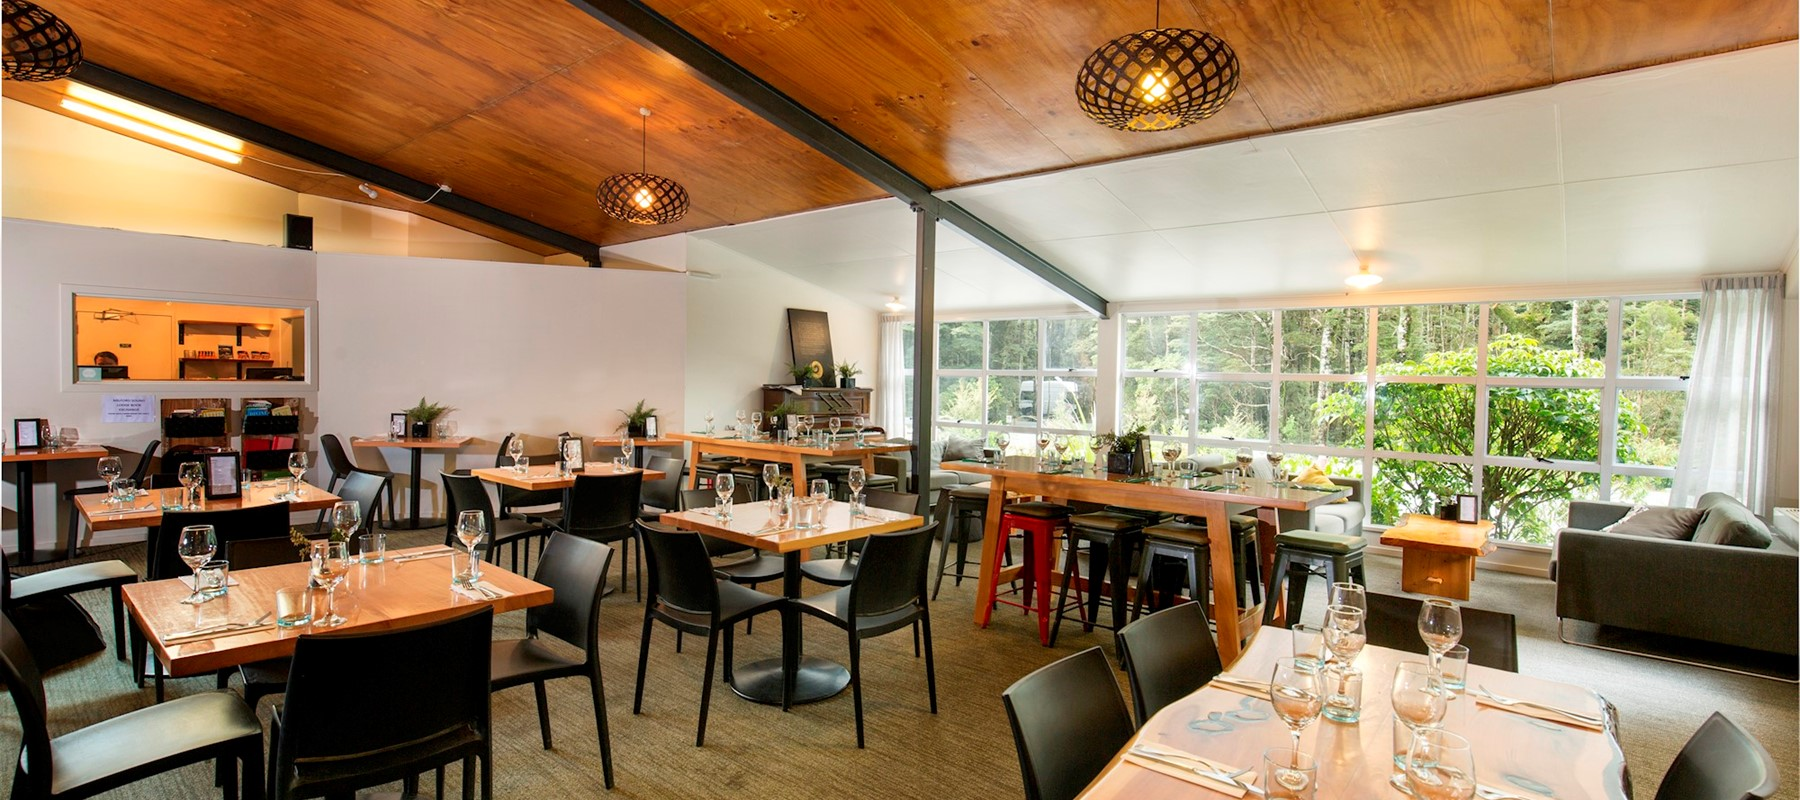 Pio Pio Restaurant's dining room with tables set at Milford Sound Lodge.